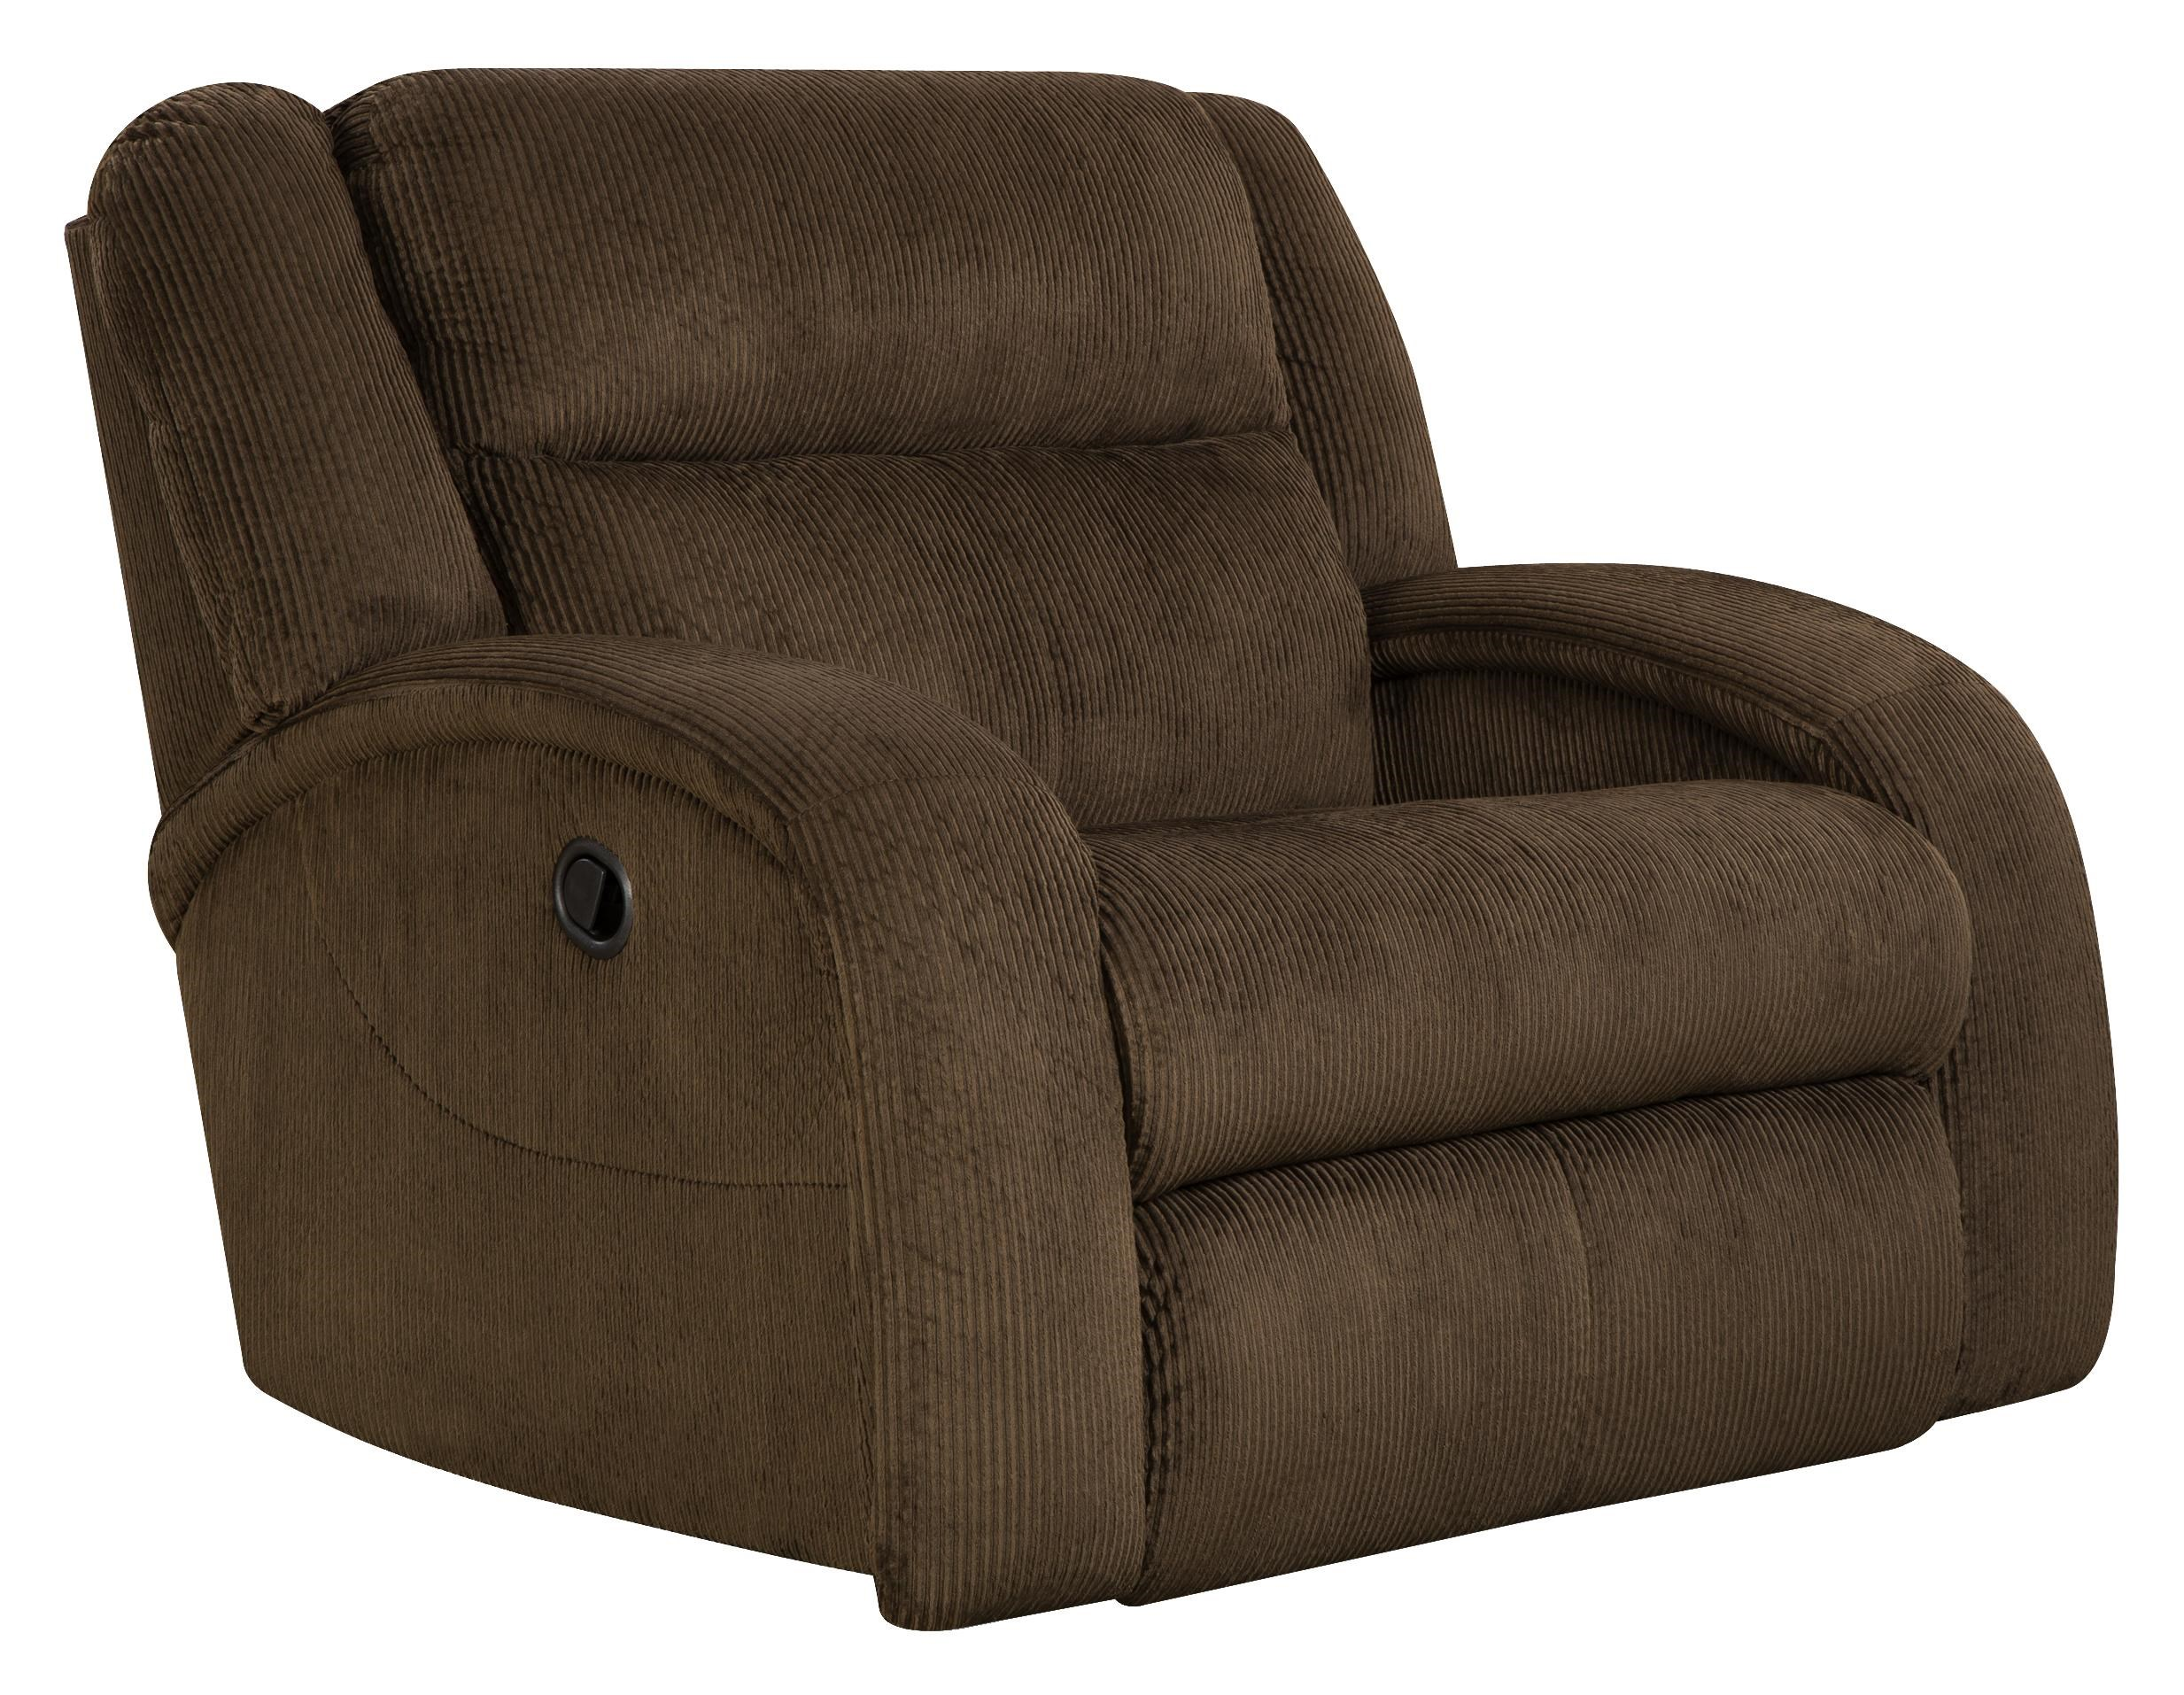 Best Furniture Stores Orlando Southern Motion Maverick Recliner Chair and a Half ...